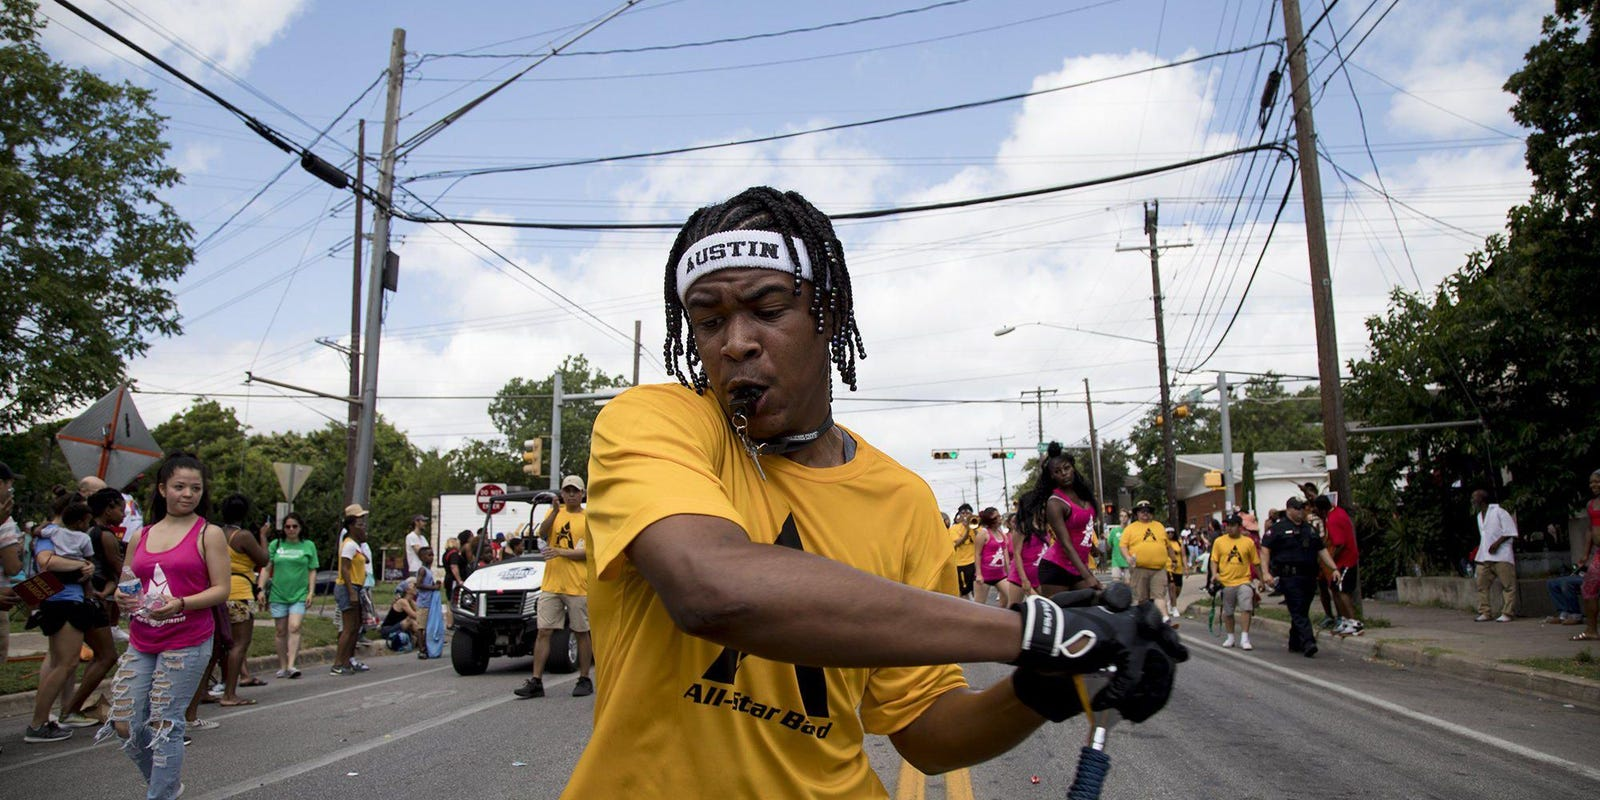 Off for Juneteenth? Nike, Twitter other corporations observe holiday